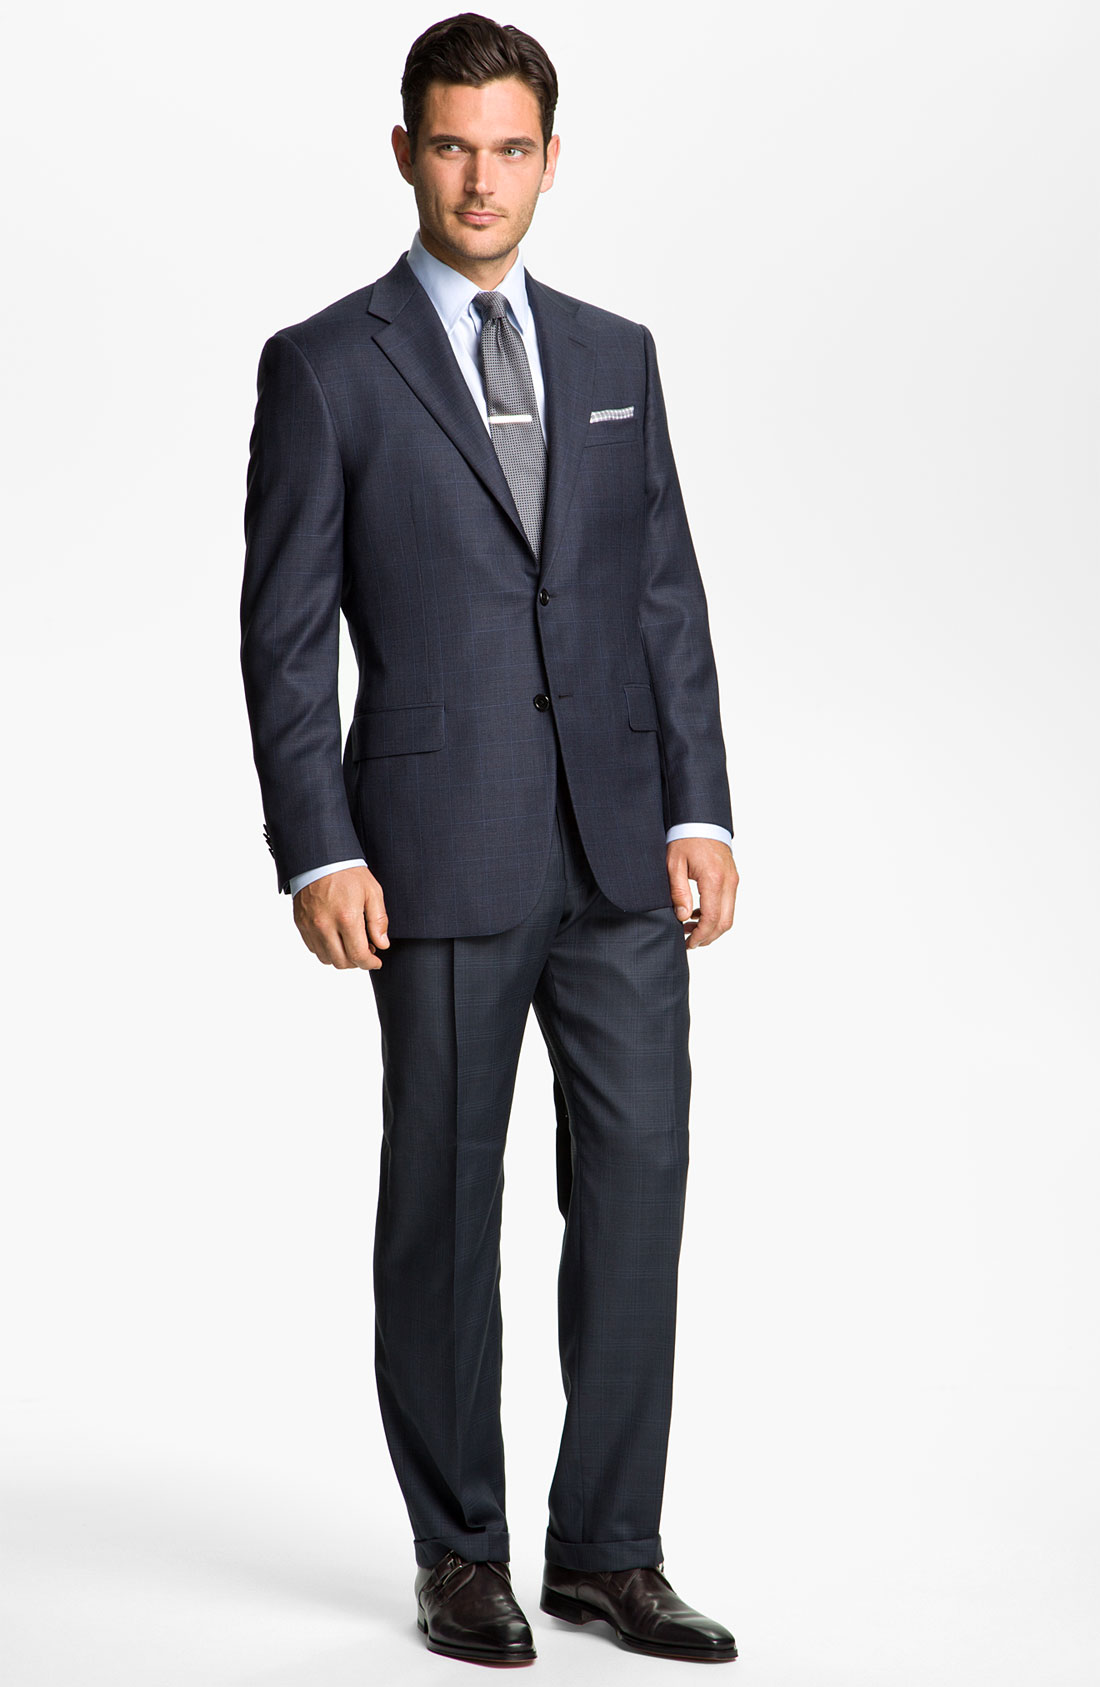 Lyst - Hickey Freeman Windowpane Suit in Blue for Men